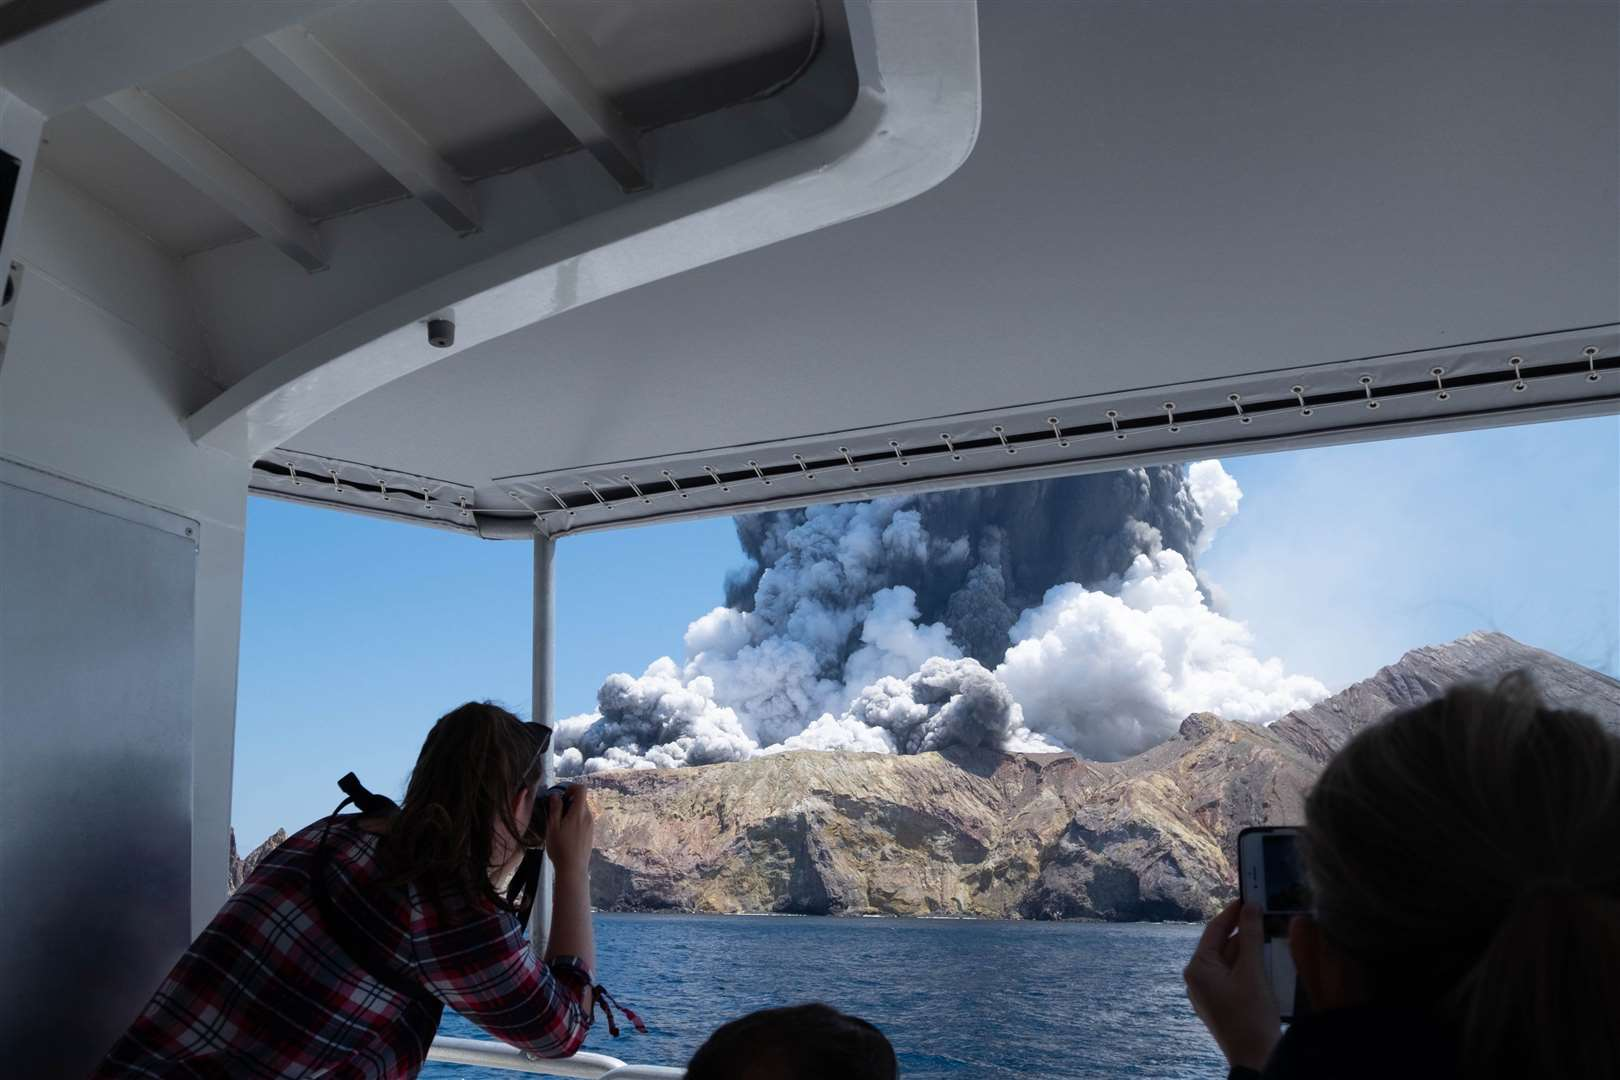 Picture taken of the erupting volcano in New Zealand by Michael Schade. (23835592)